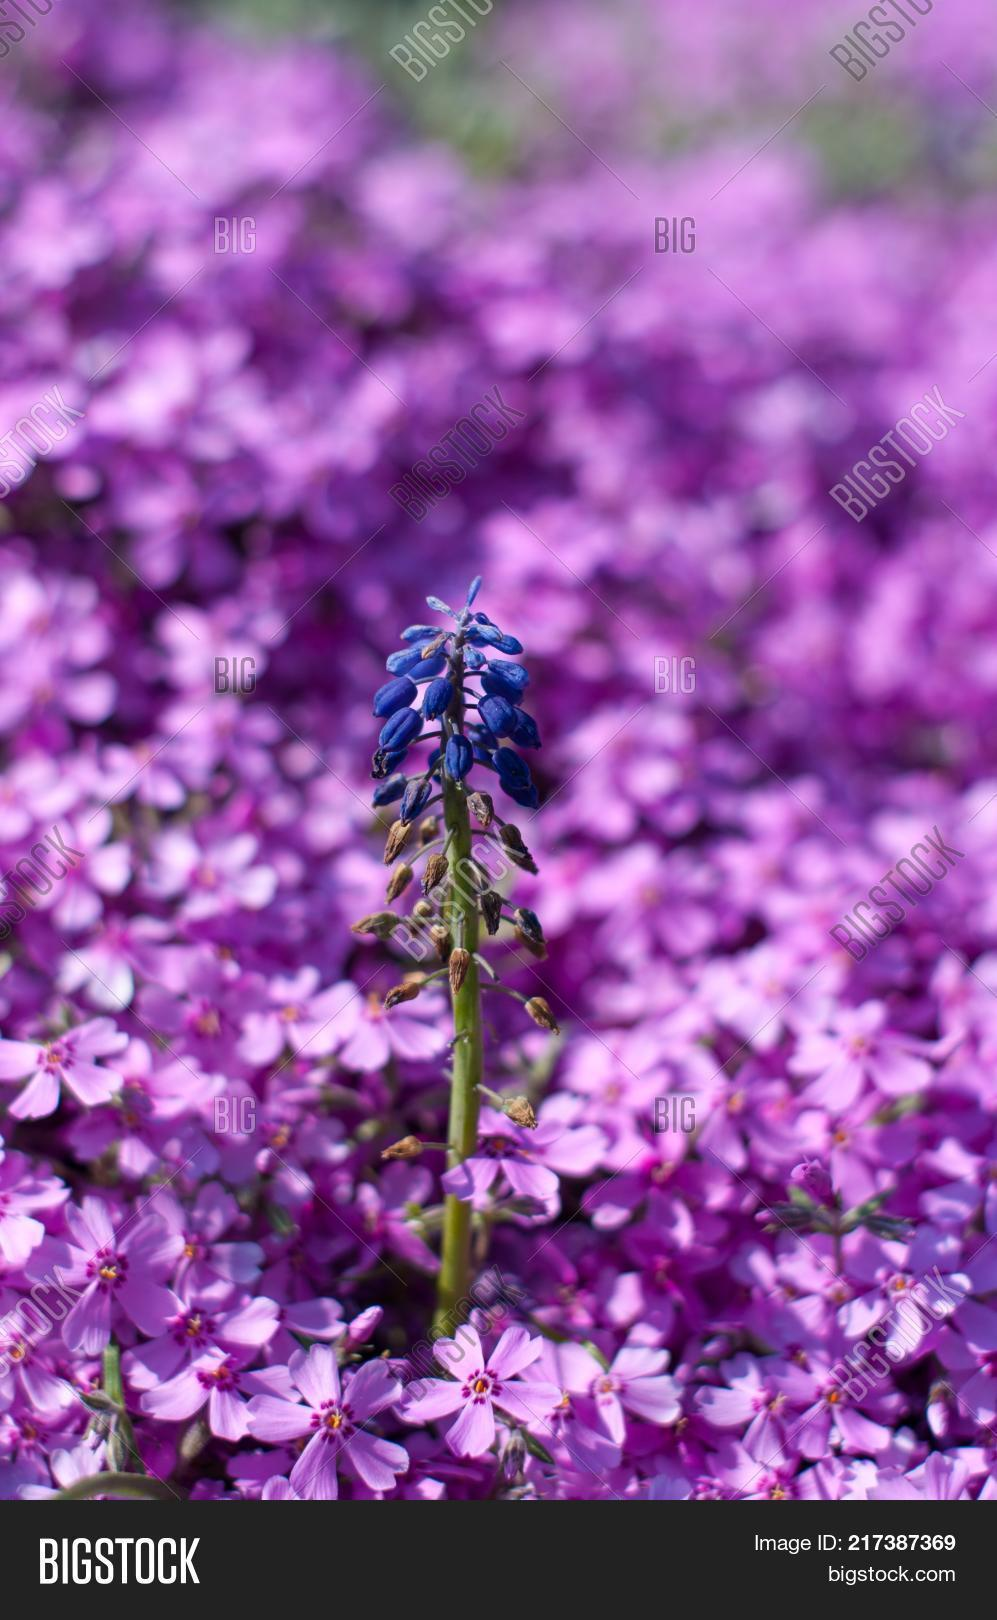 Tiny blue flower image photo free trial bigstock tiny blue flower is growing in the middle of purple flowers meadow in a city botanic izmirmasajfo